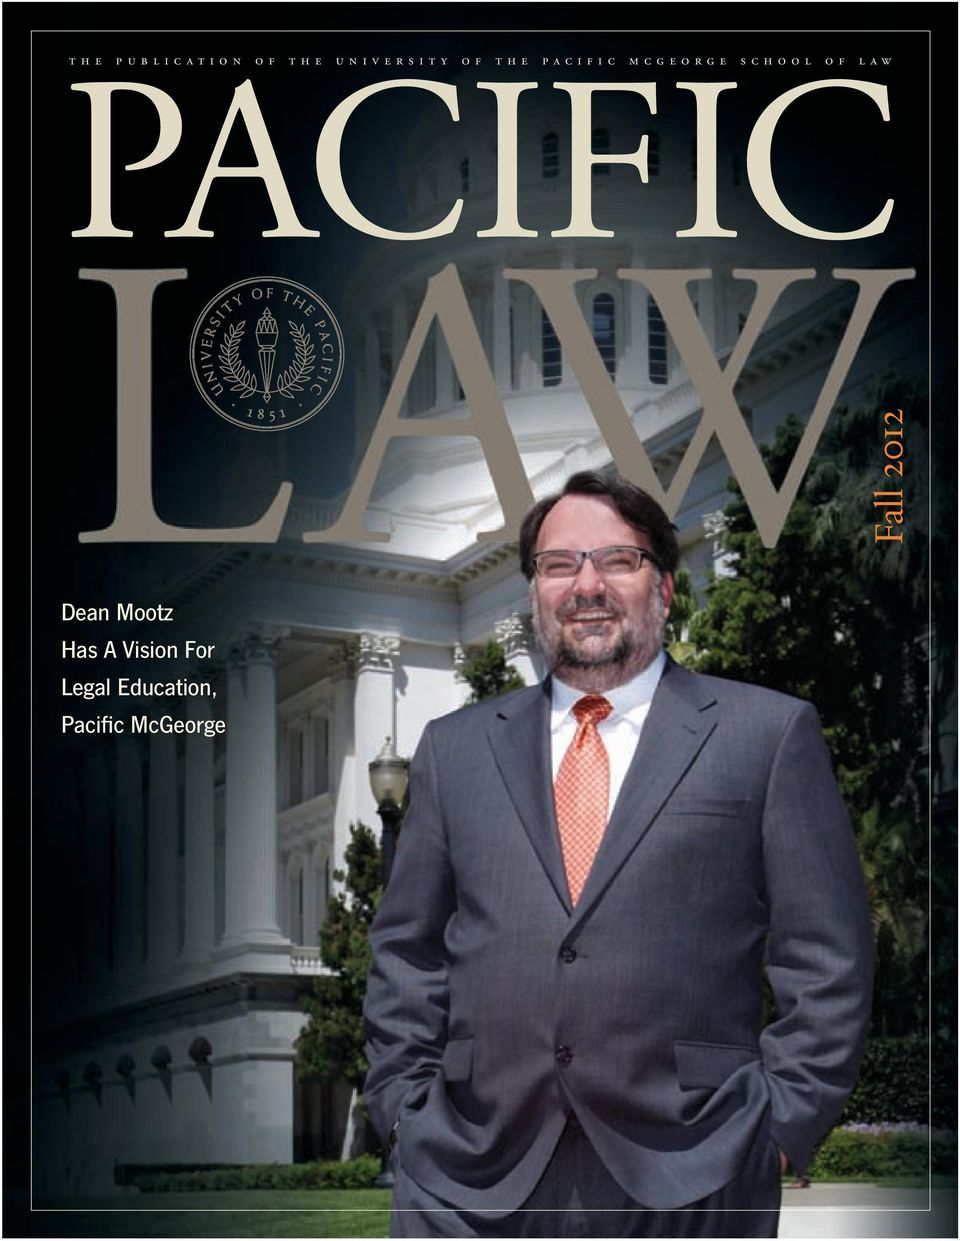 law Fall 2012 Dean Mootz Has A